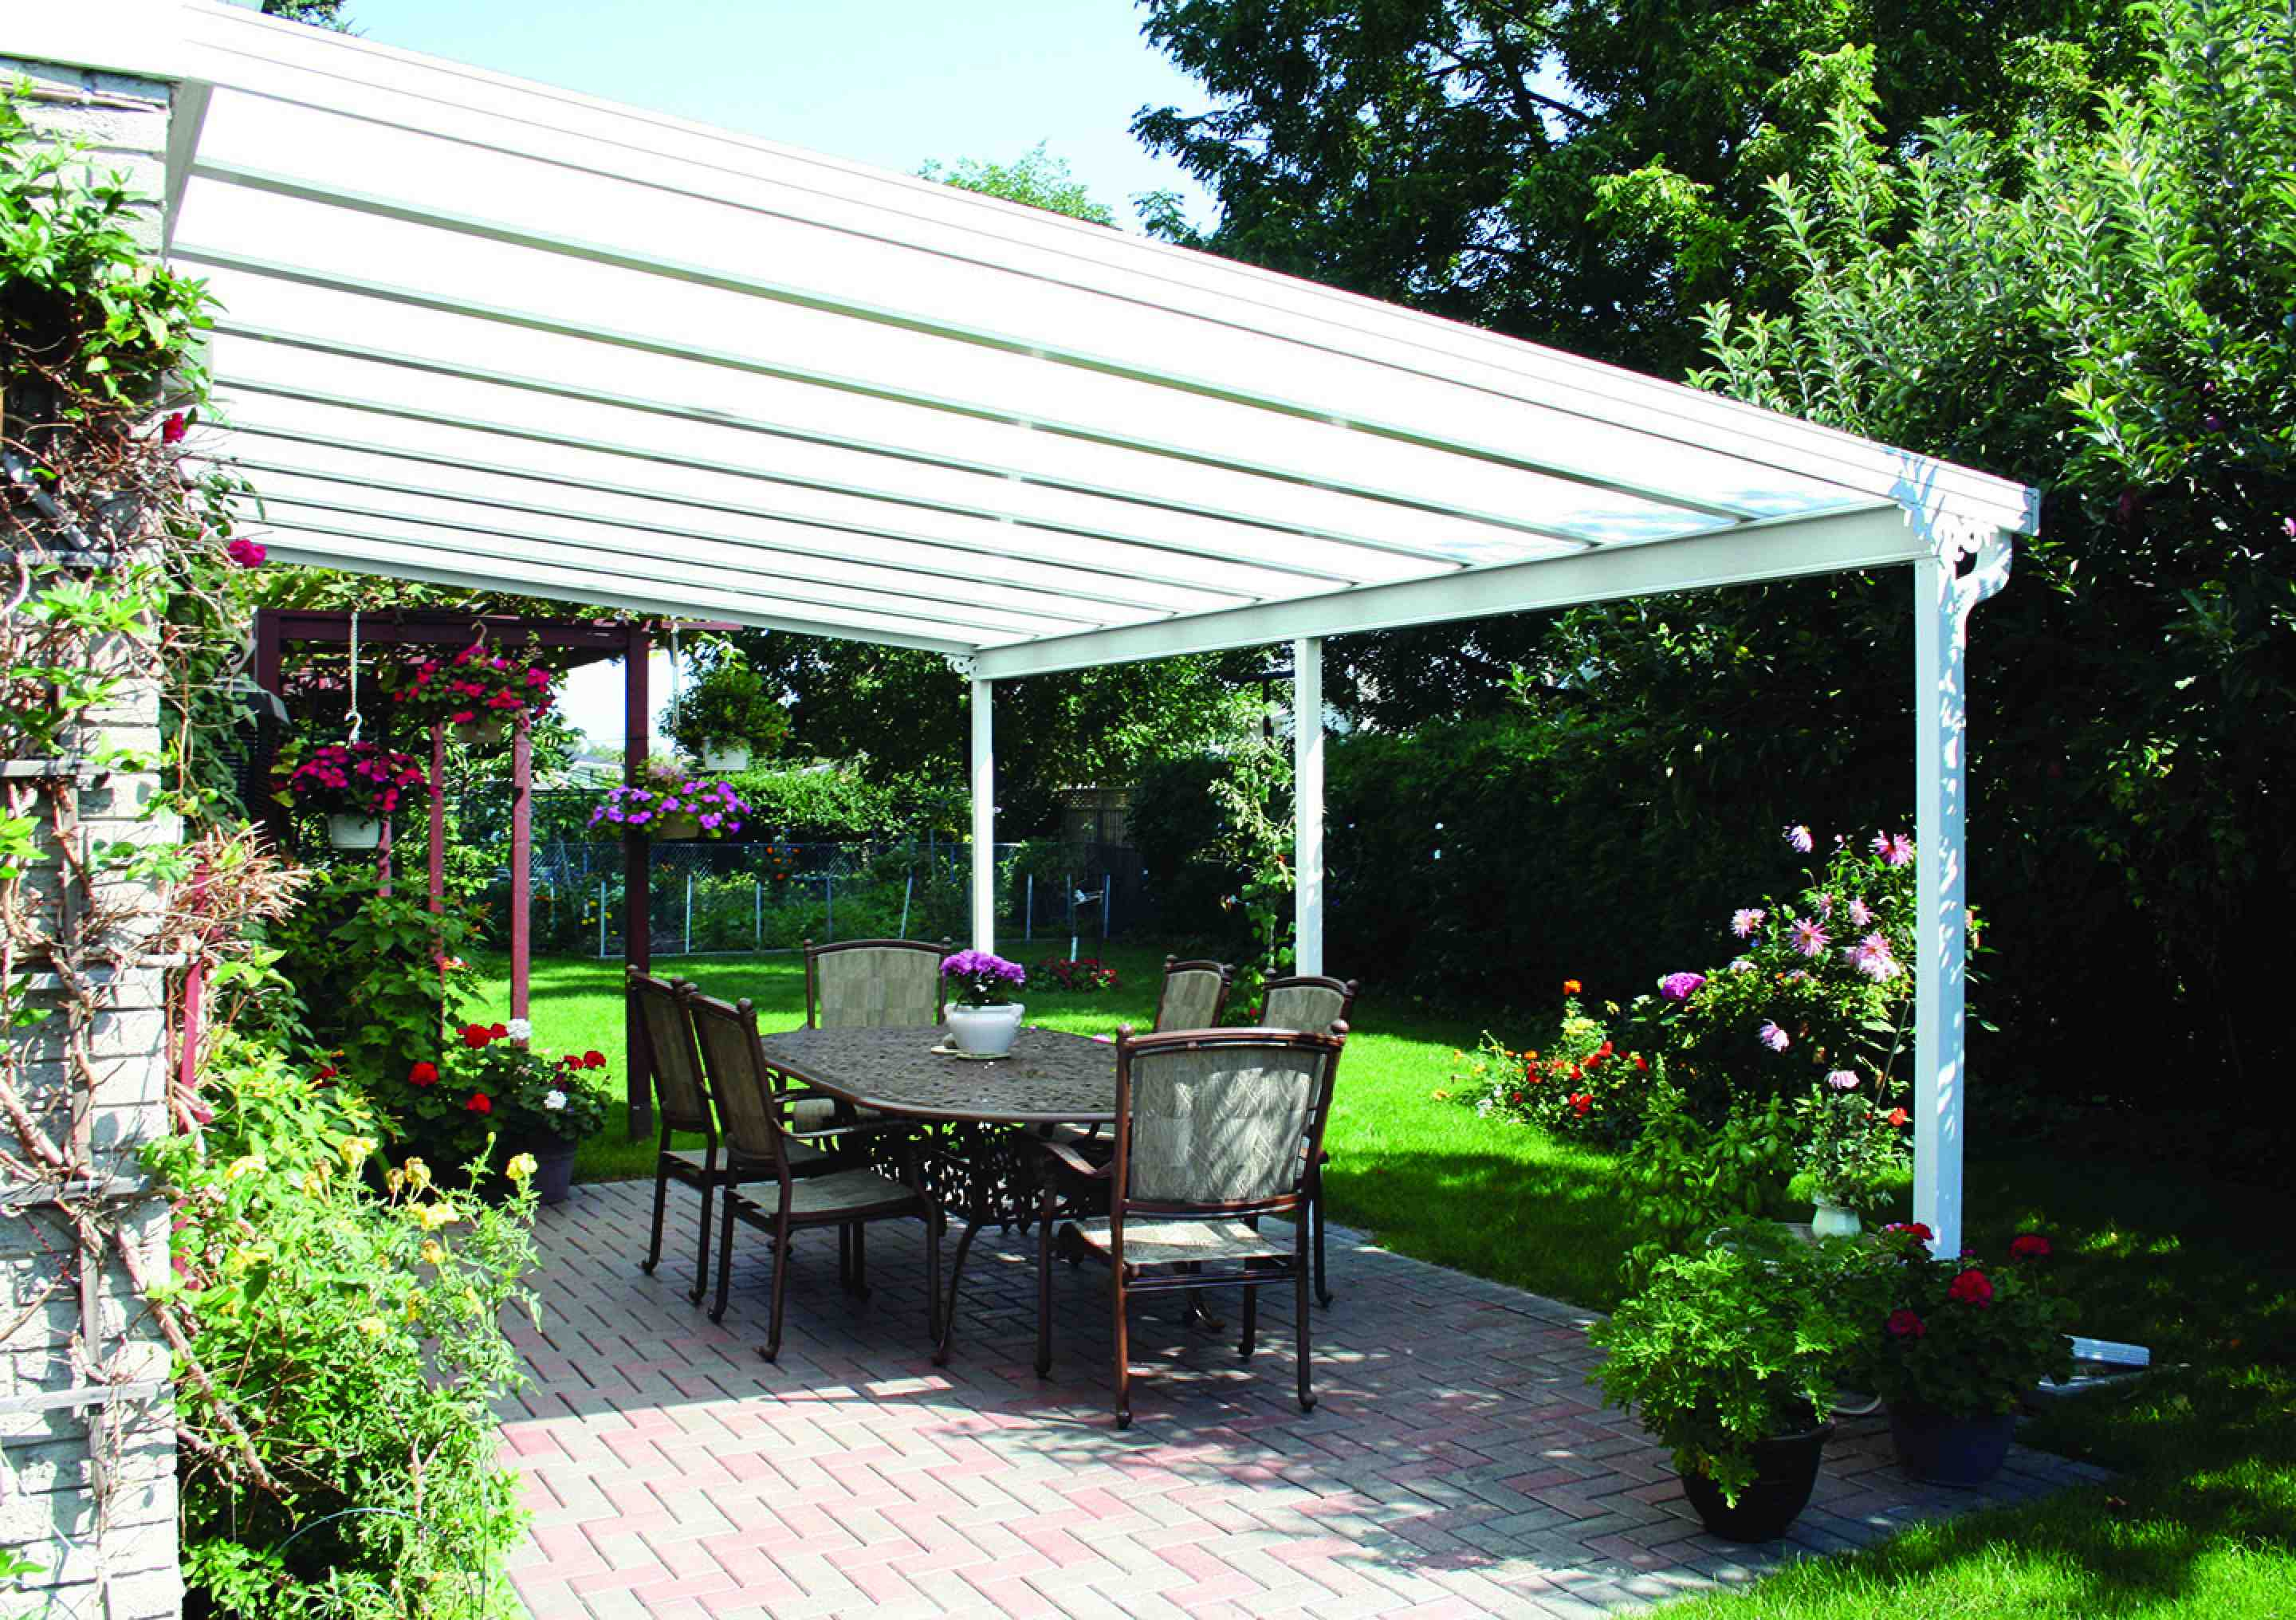 Patio cover, patio covers, covered patio, covered patios, deck cover, deck covers, sunroom, sunrooms, solarium, solariums, three season room, three season sunroom, four season room, four season sunroom, four season sunrooms , enclosure, enclosures, sun enclosure, sun enclosures, patio enclosure, patio enclosures, patio, patios, outdoor patio, outdoor patios, free standing patio cover, custom patio cover, custom patio covers, customized patio cover, customized patio covers, glass patio cover